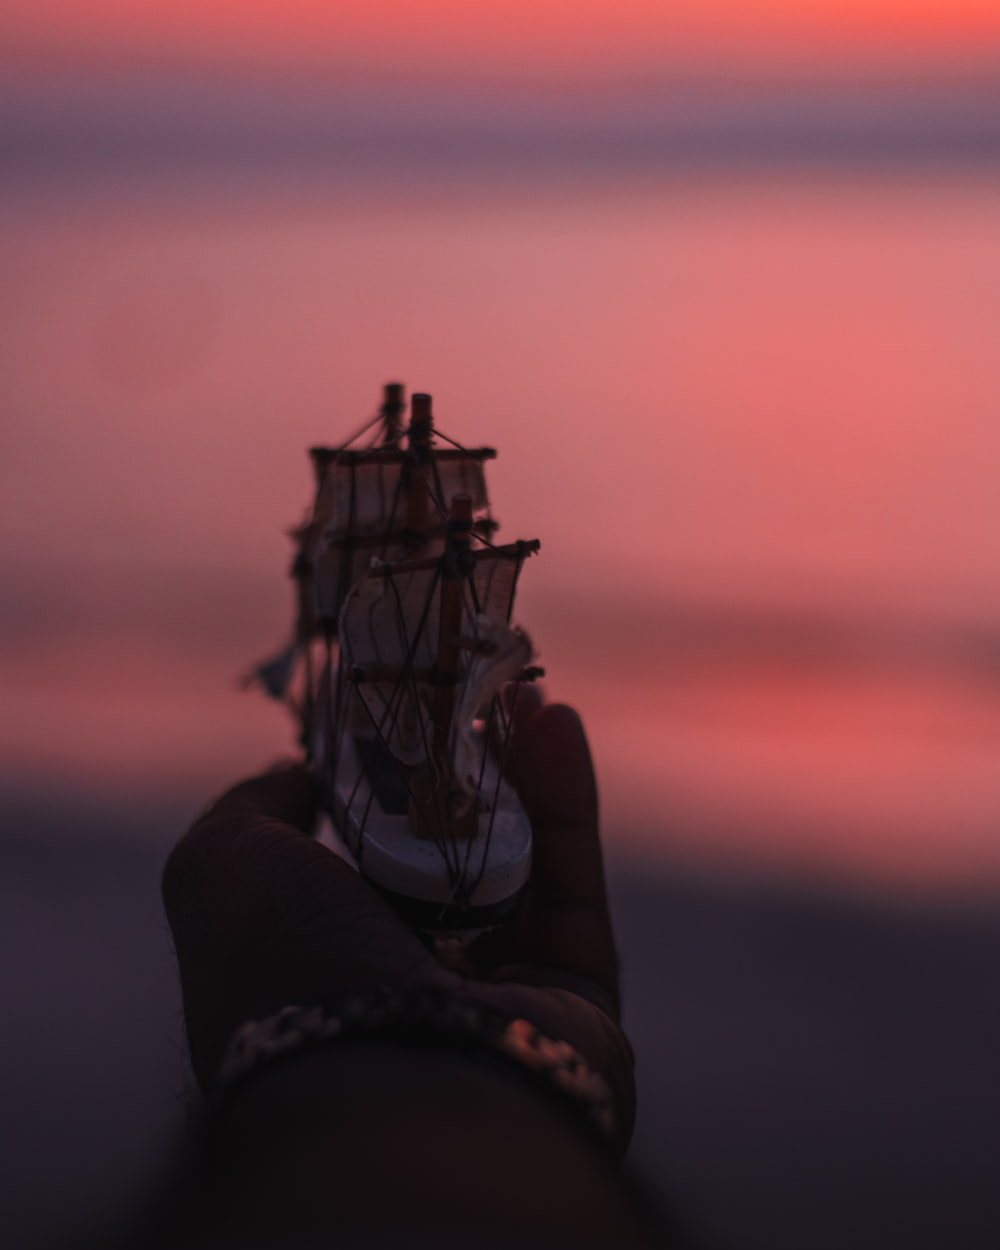 person holding a white and brown ship miniature